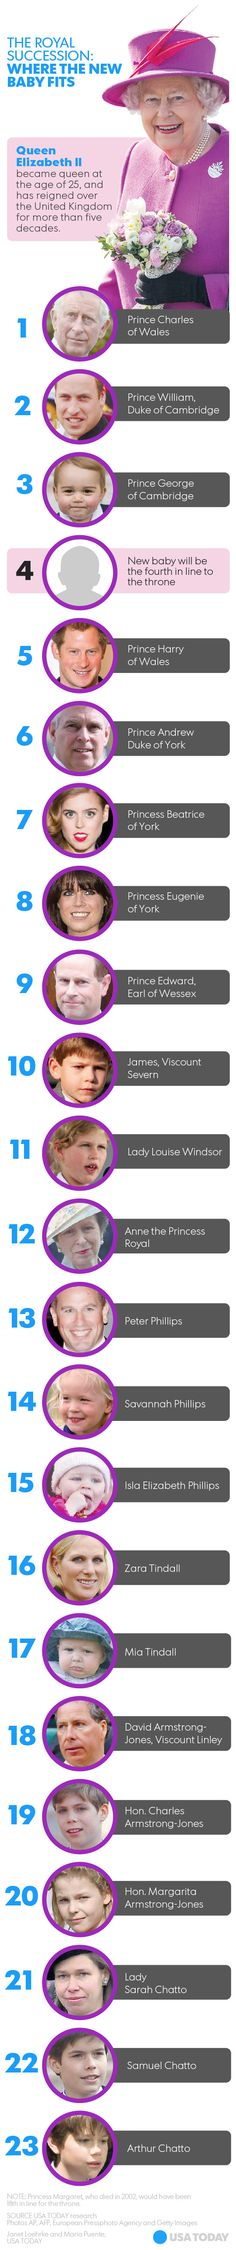 Graphic: The royal succession chart